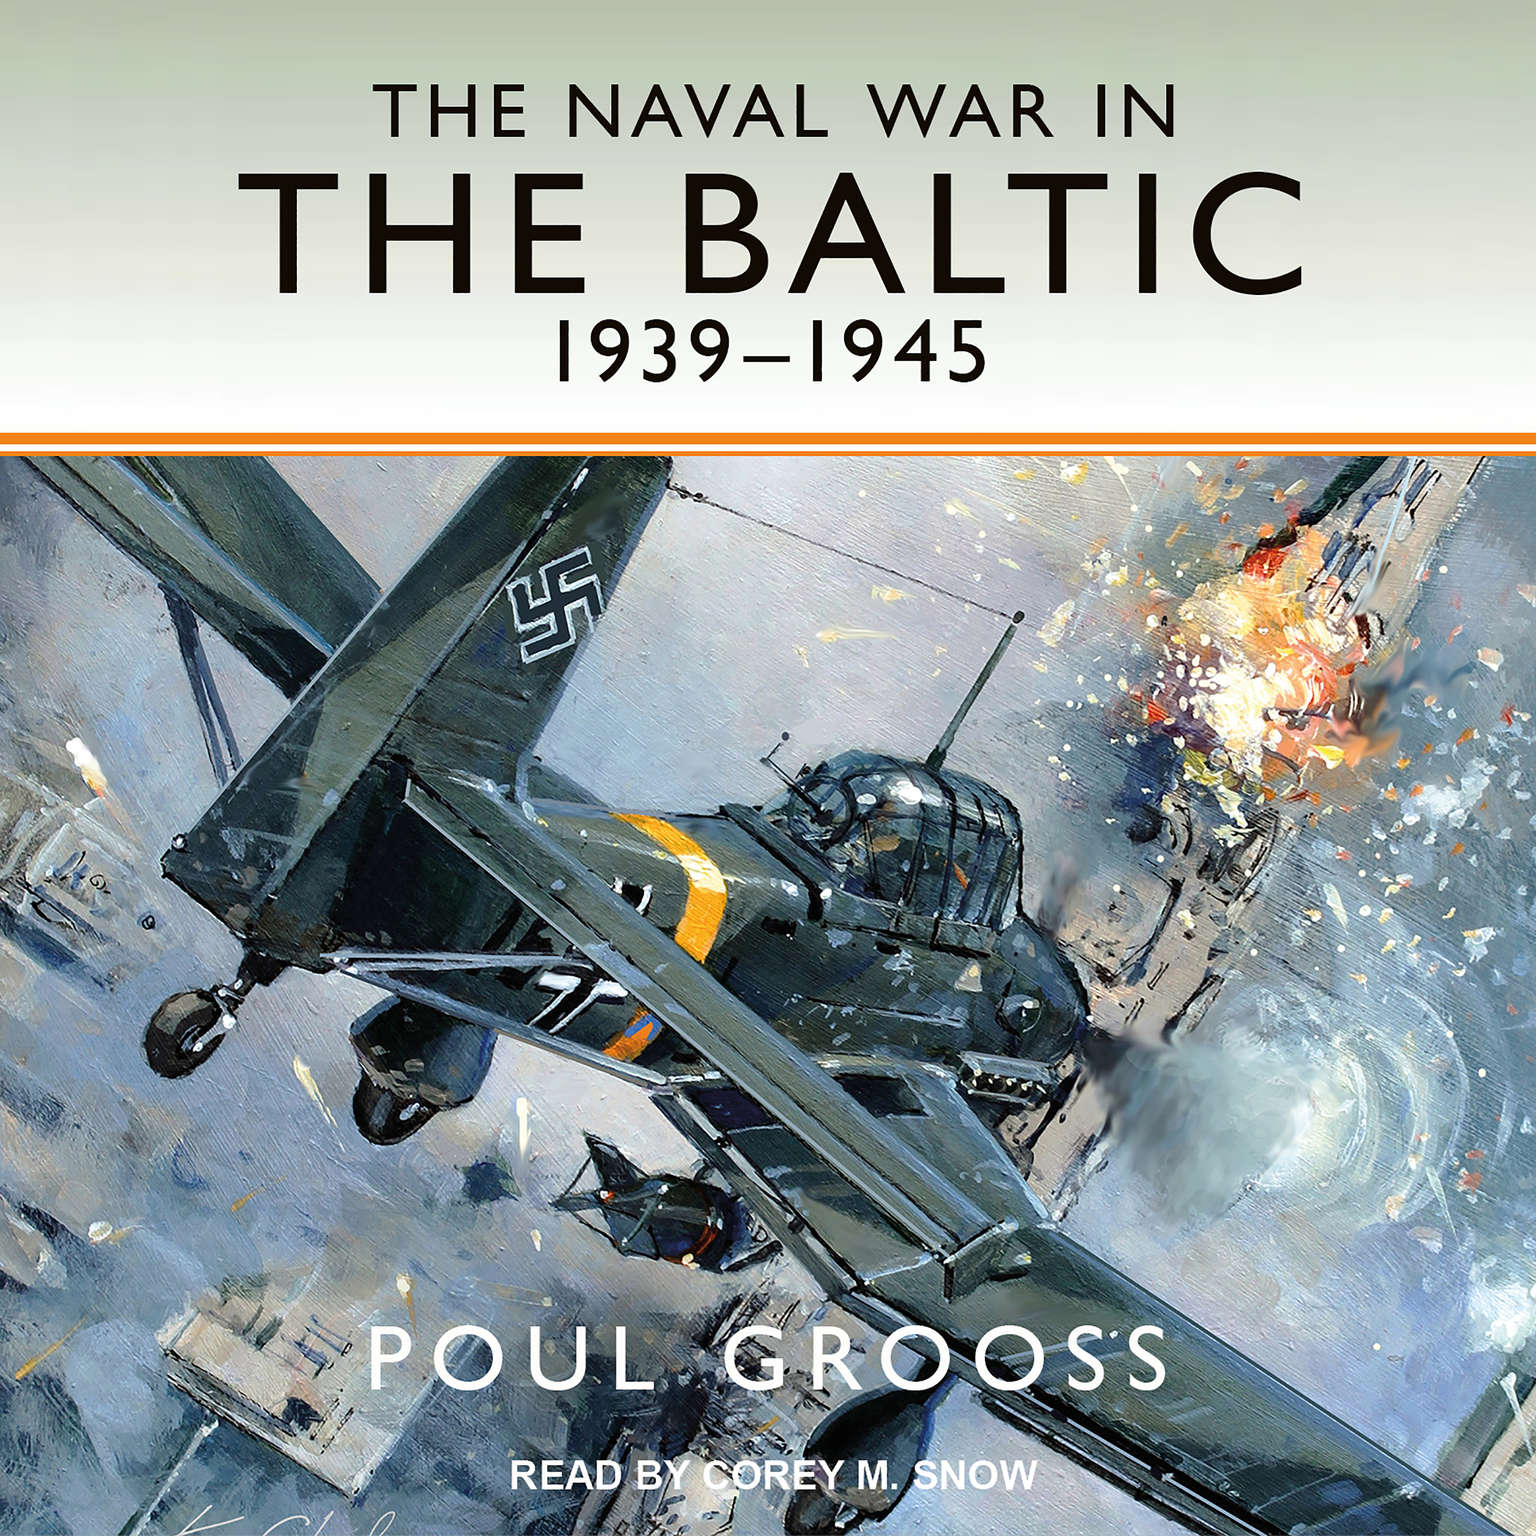 The Naval War in the Baltic, 1939-1945 Audiobook, by Poul Grooss